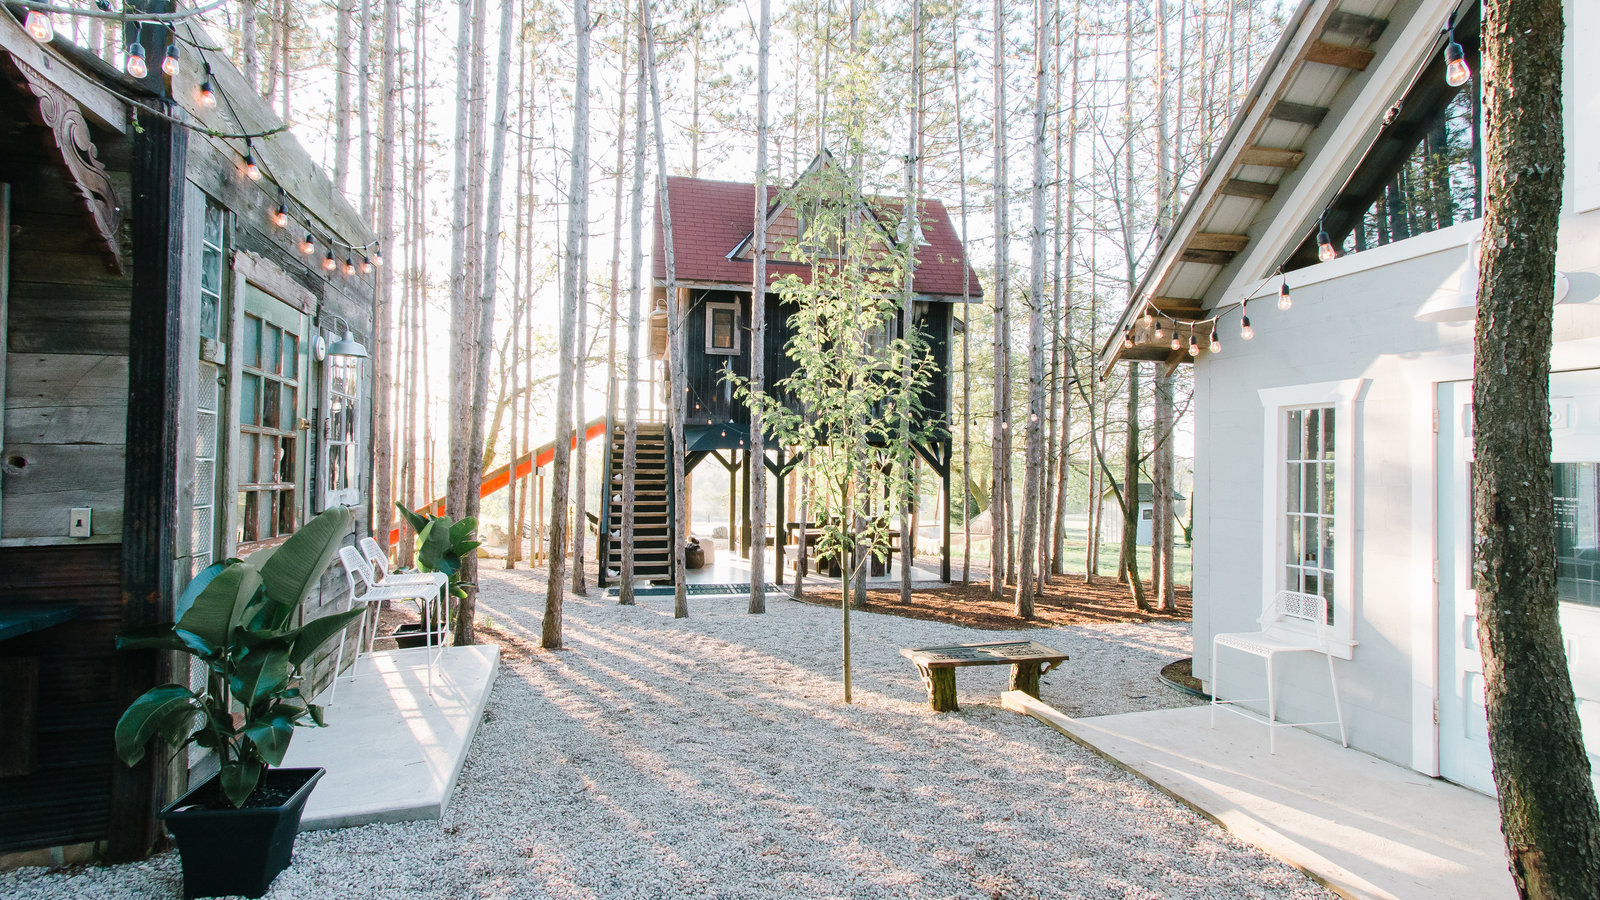 Treehouse-Cabin-Retreat-Vacation-Rental-Lynne-Knowlton-19